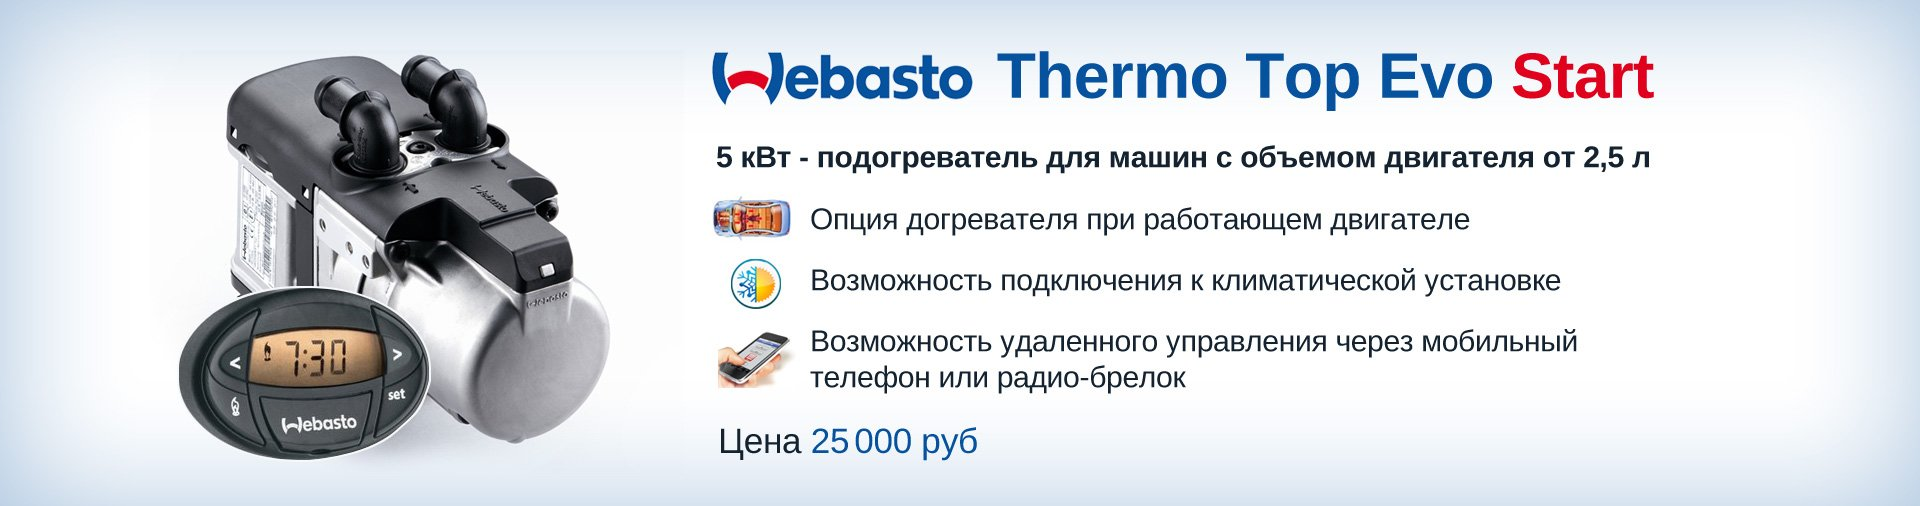 Webasto Thermo Top Evo Start